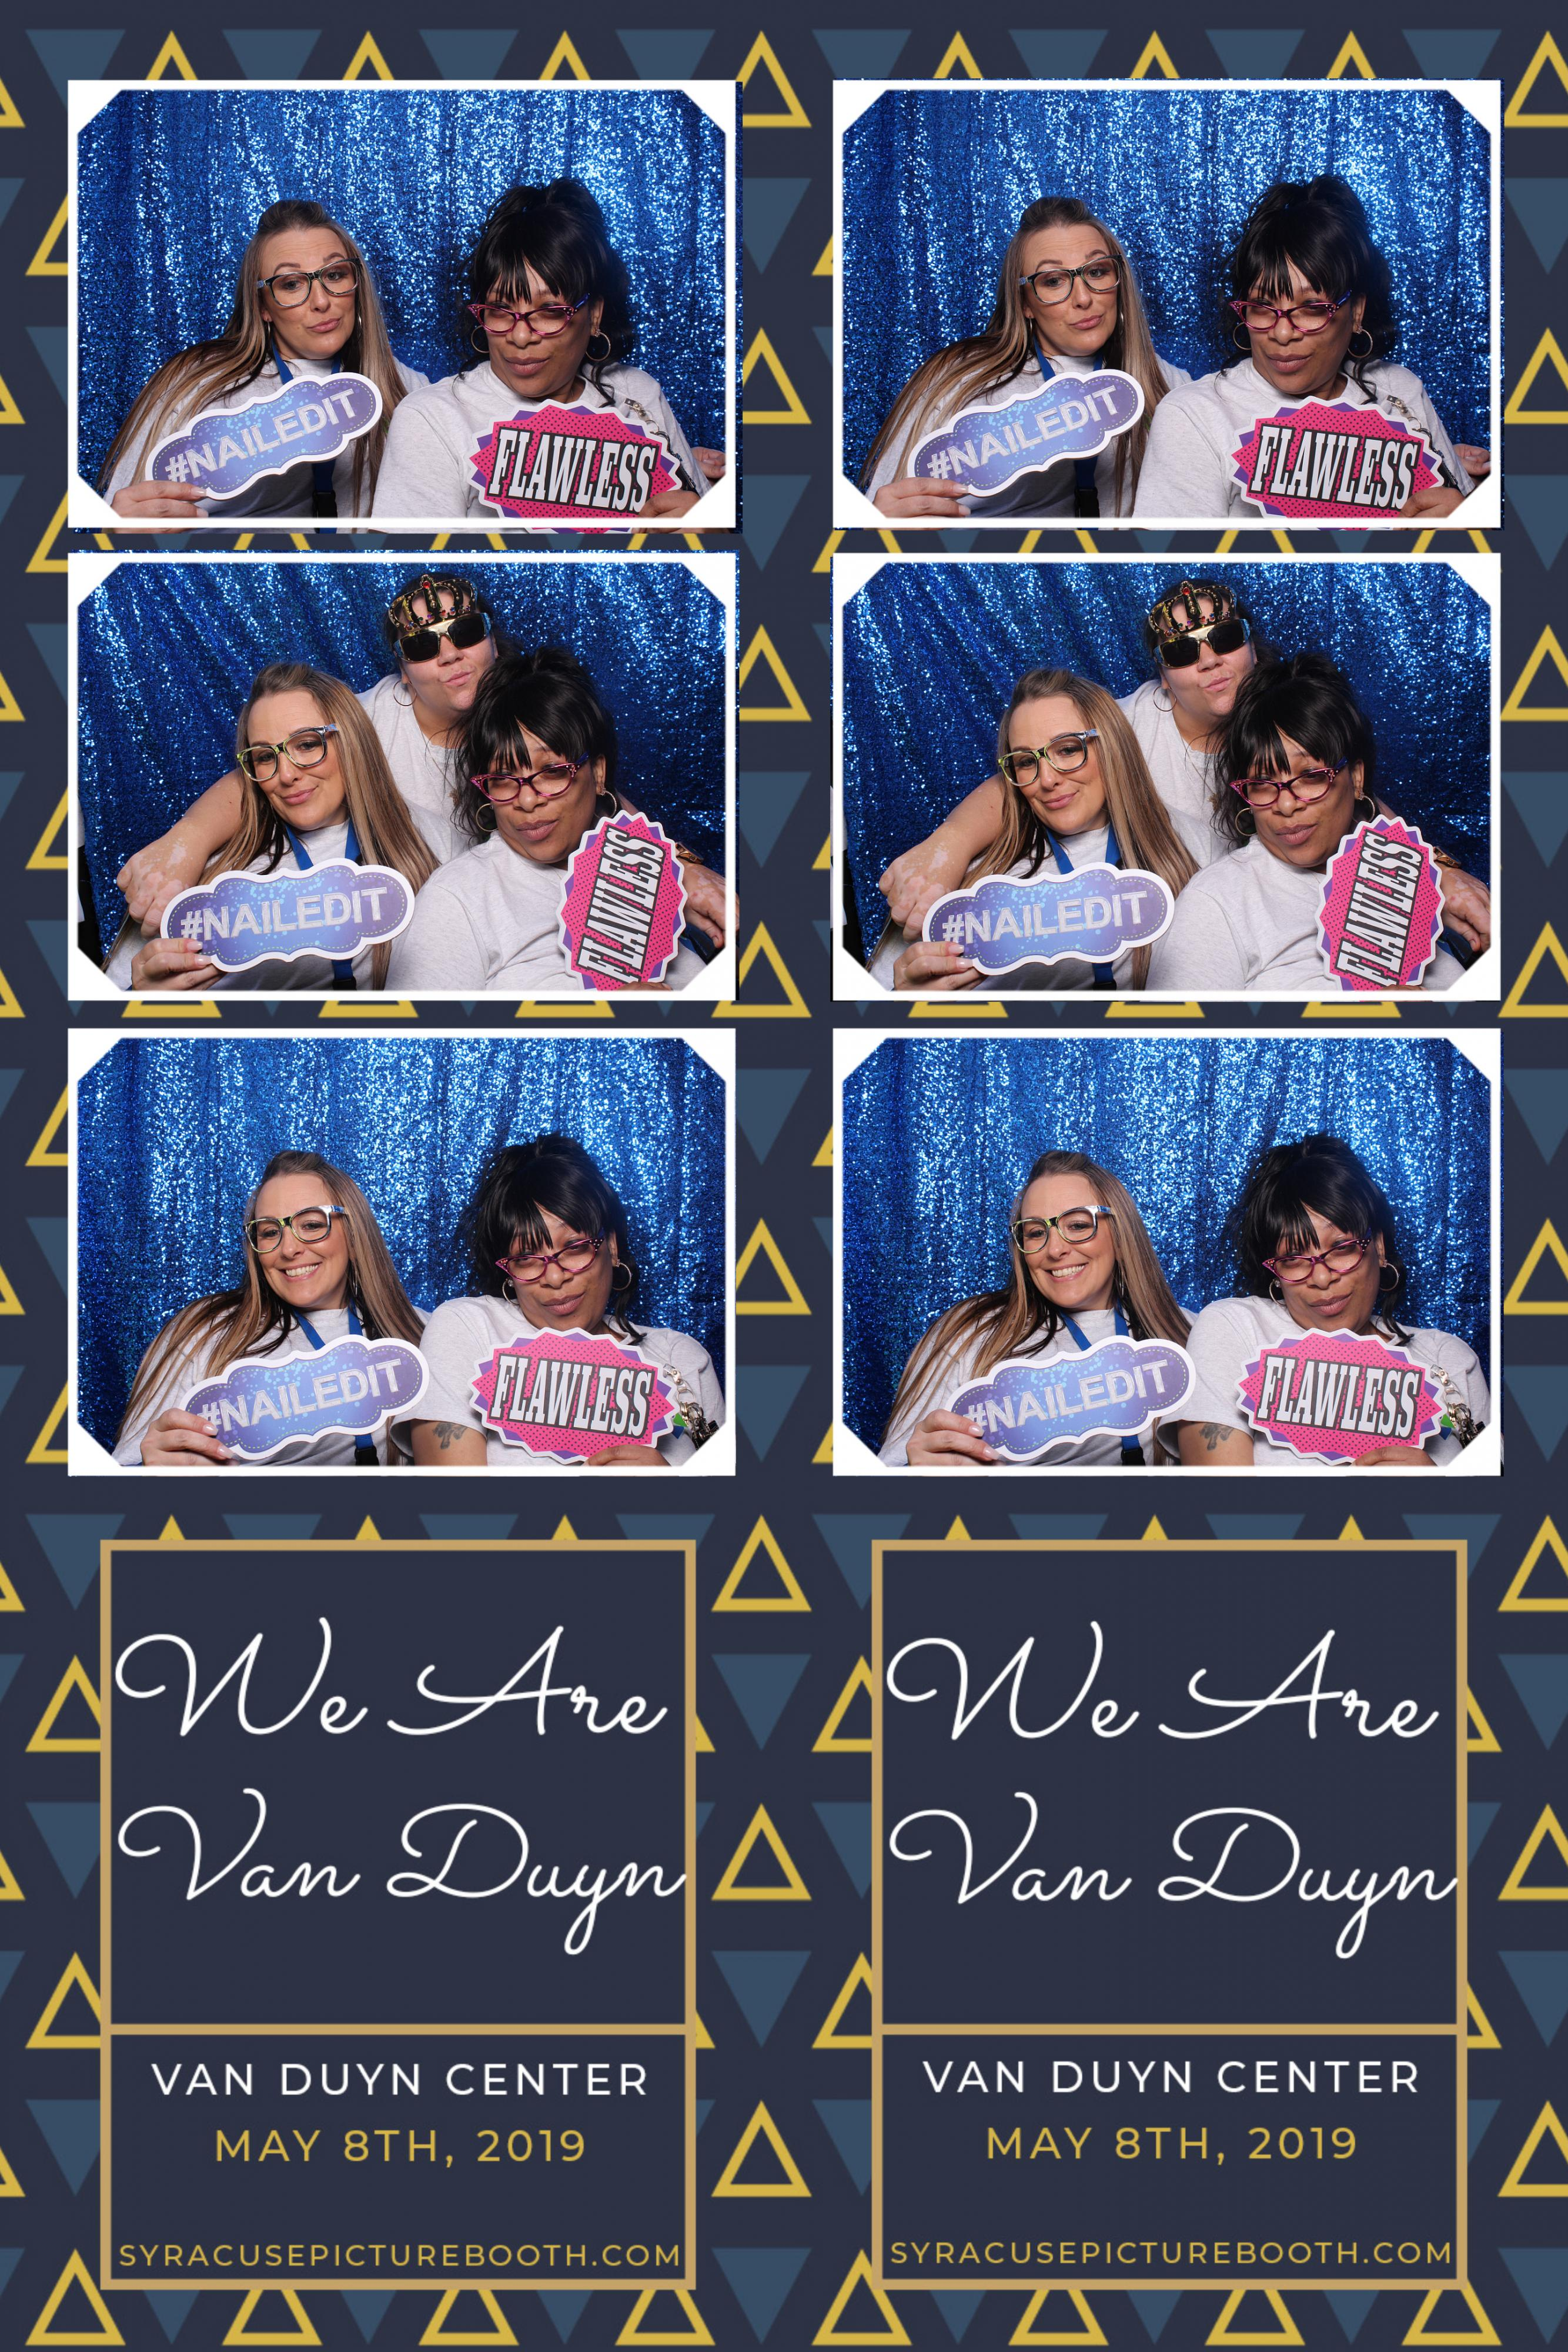 Van Duyn Center Employee Appreciation Day Photo Strips | View more photos from the event at gallery.syracusepicturebooth.com/u/SyracusePicturebooth/Van-Duyn-Center-Employee-Appreciation-Day-Photo-Strips